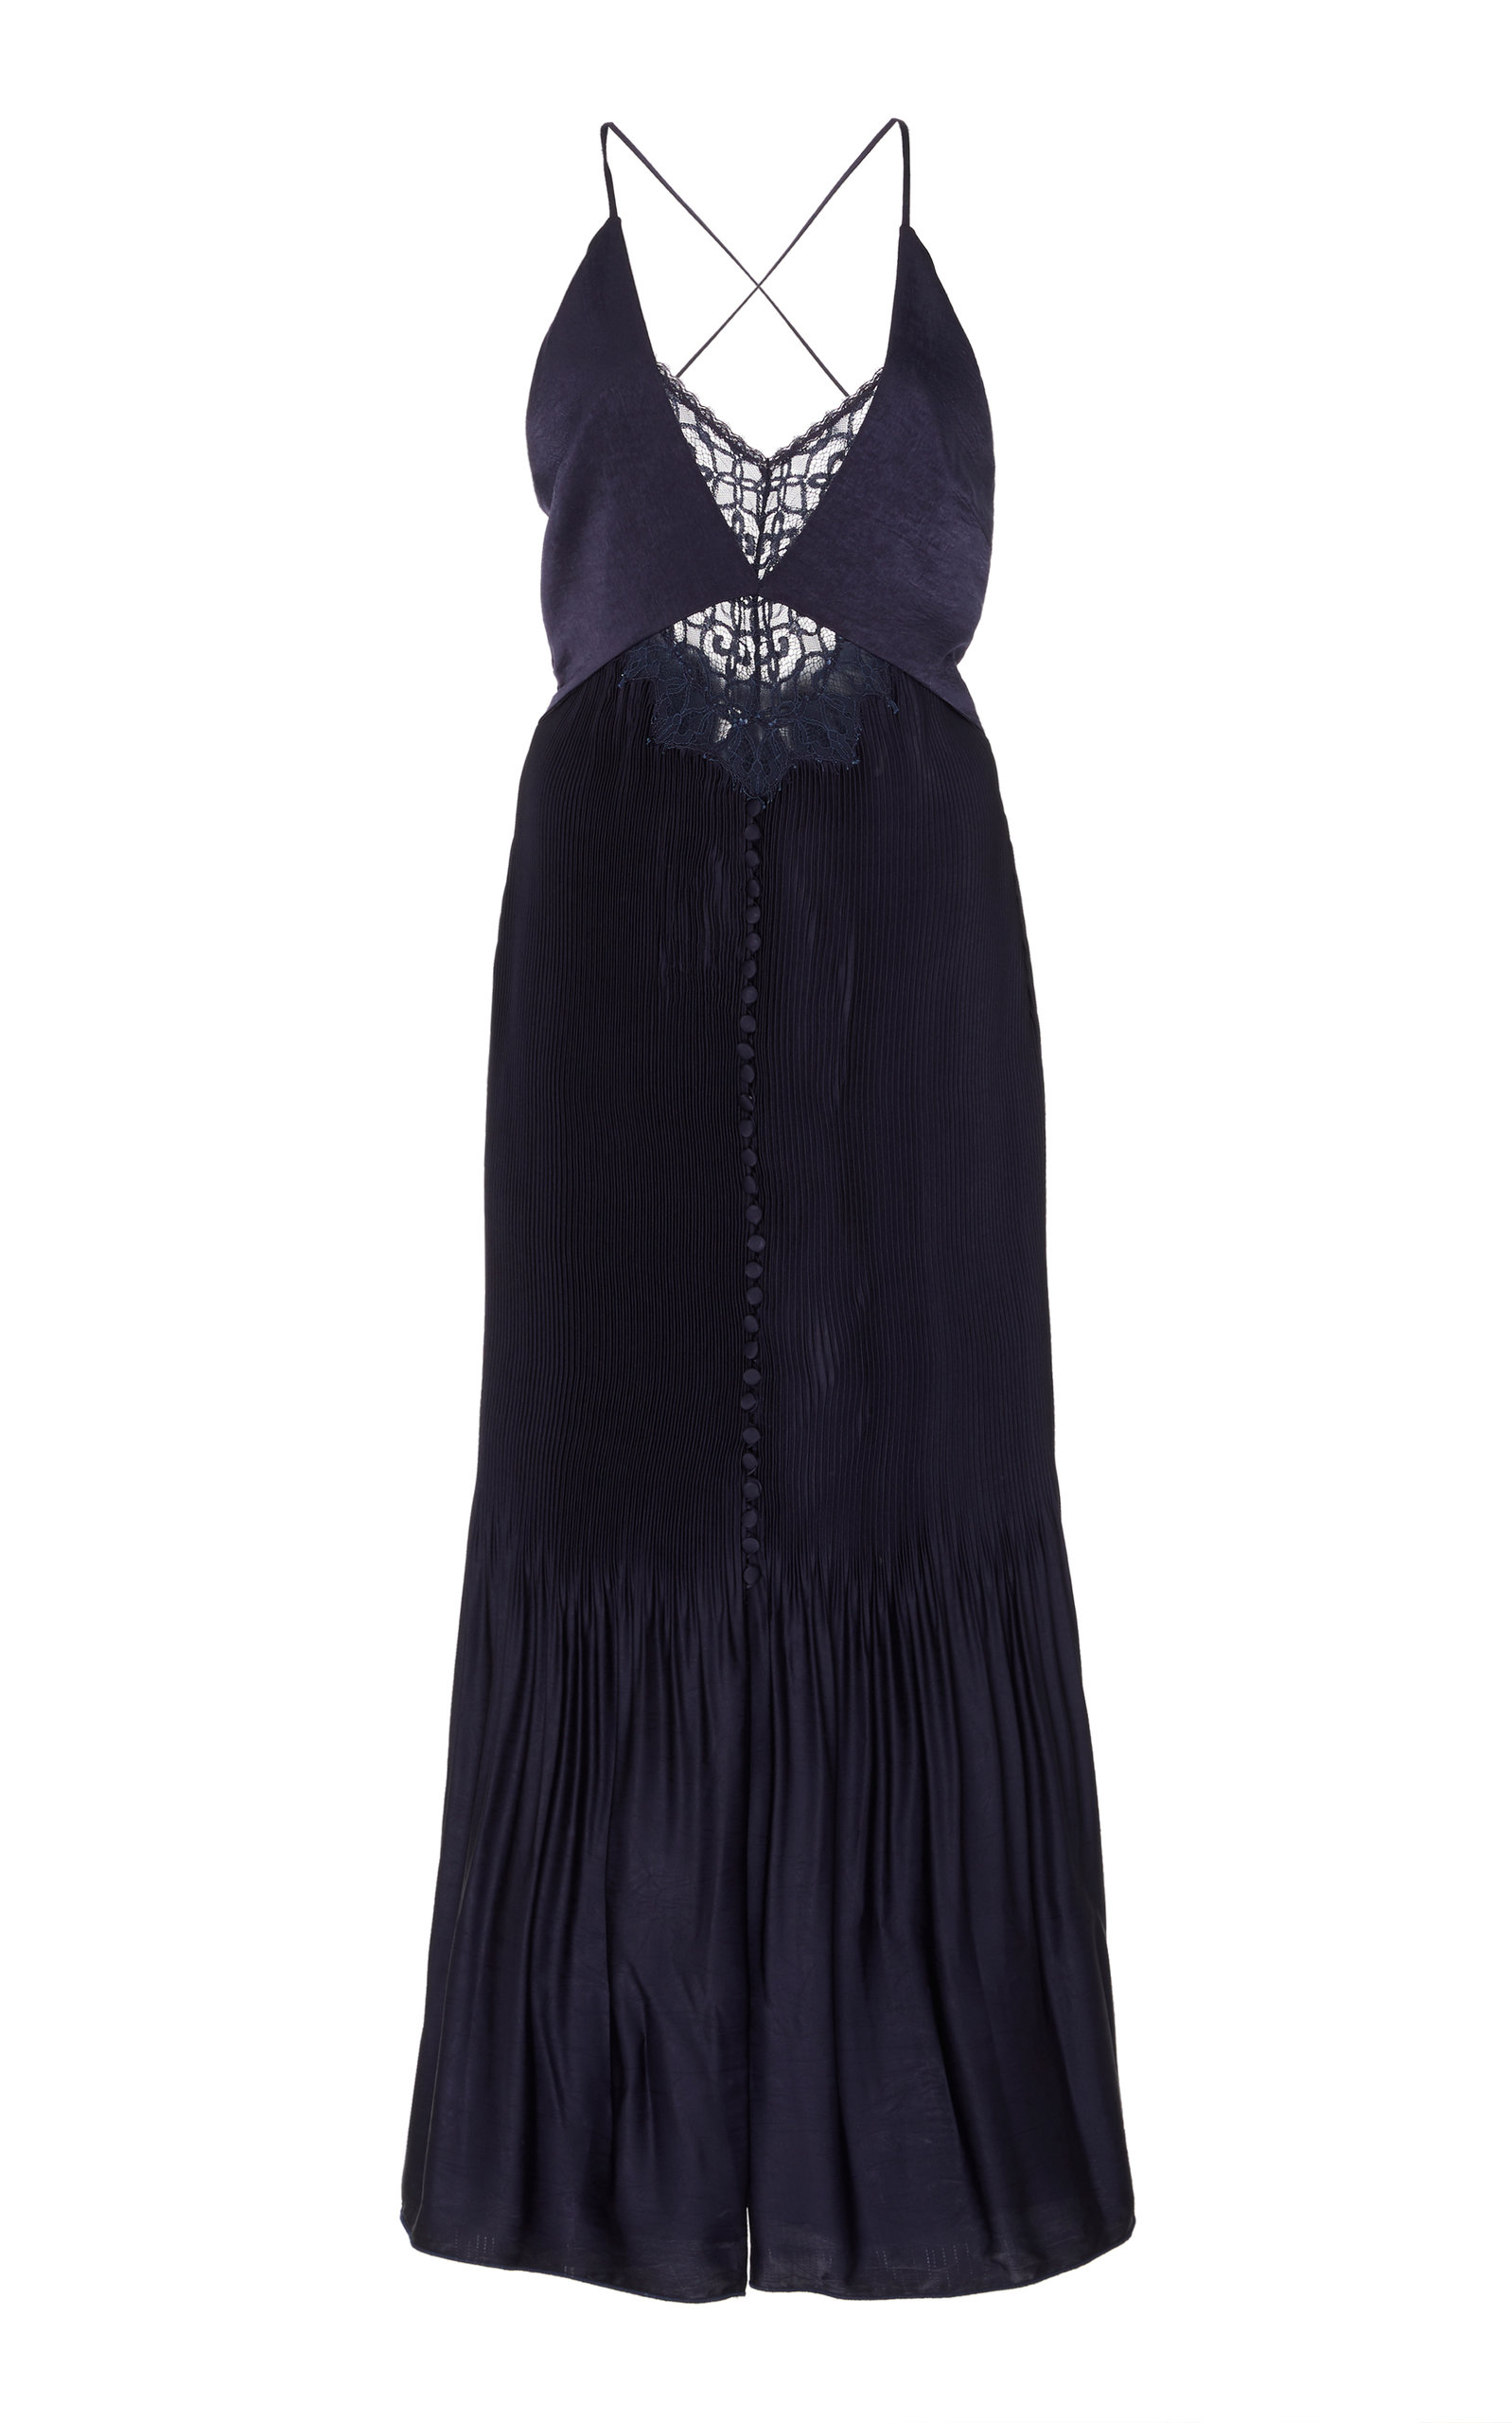 Jonathan Simkhai LACE-ACCENTED PLEATED MIDI DRESS